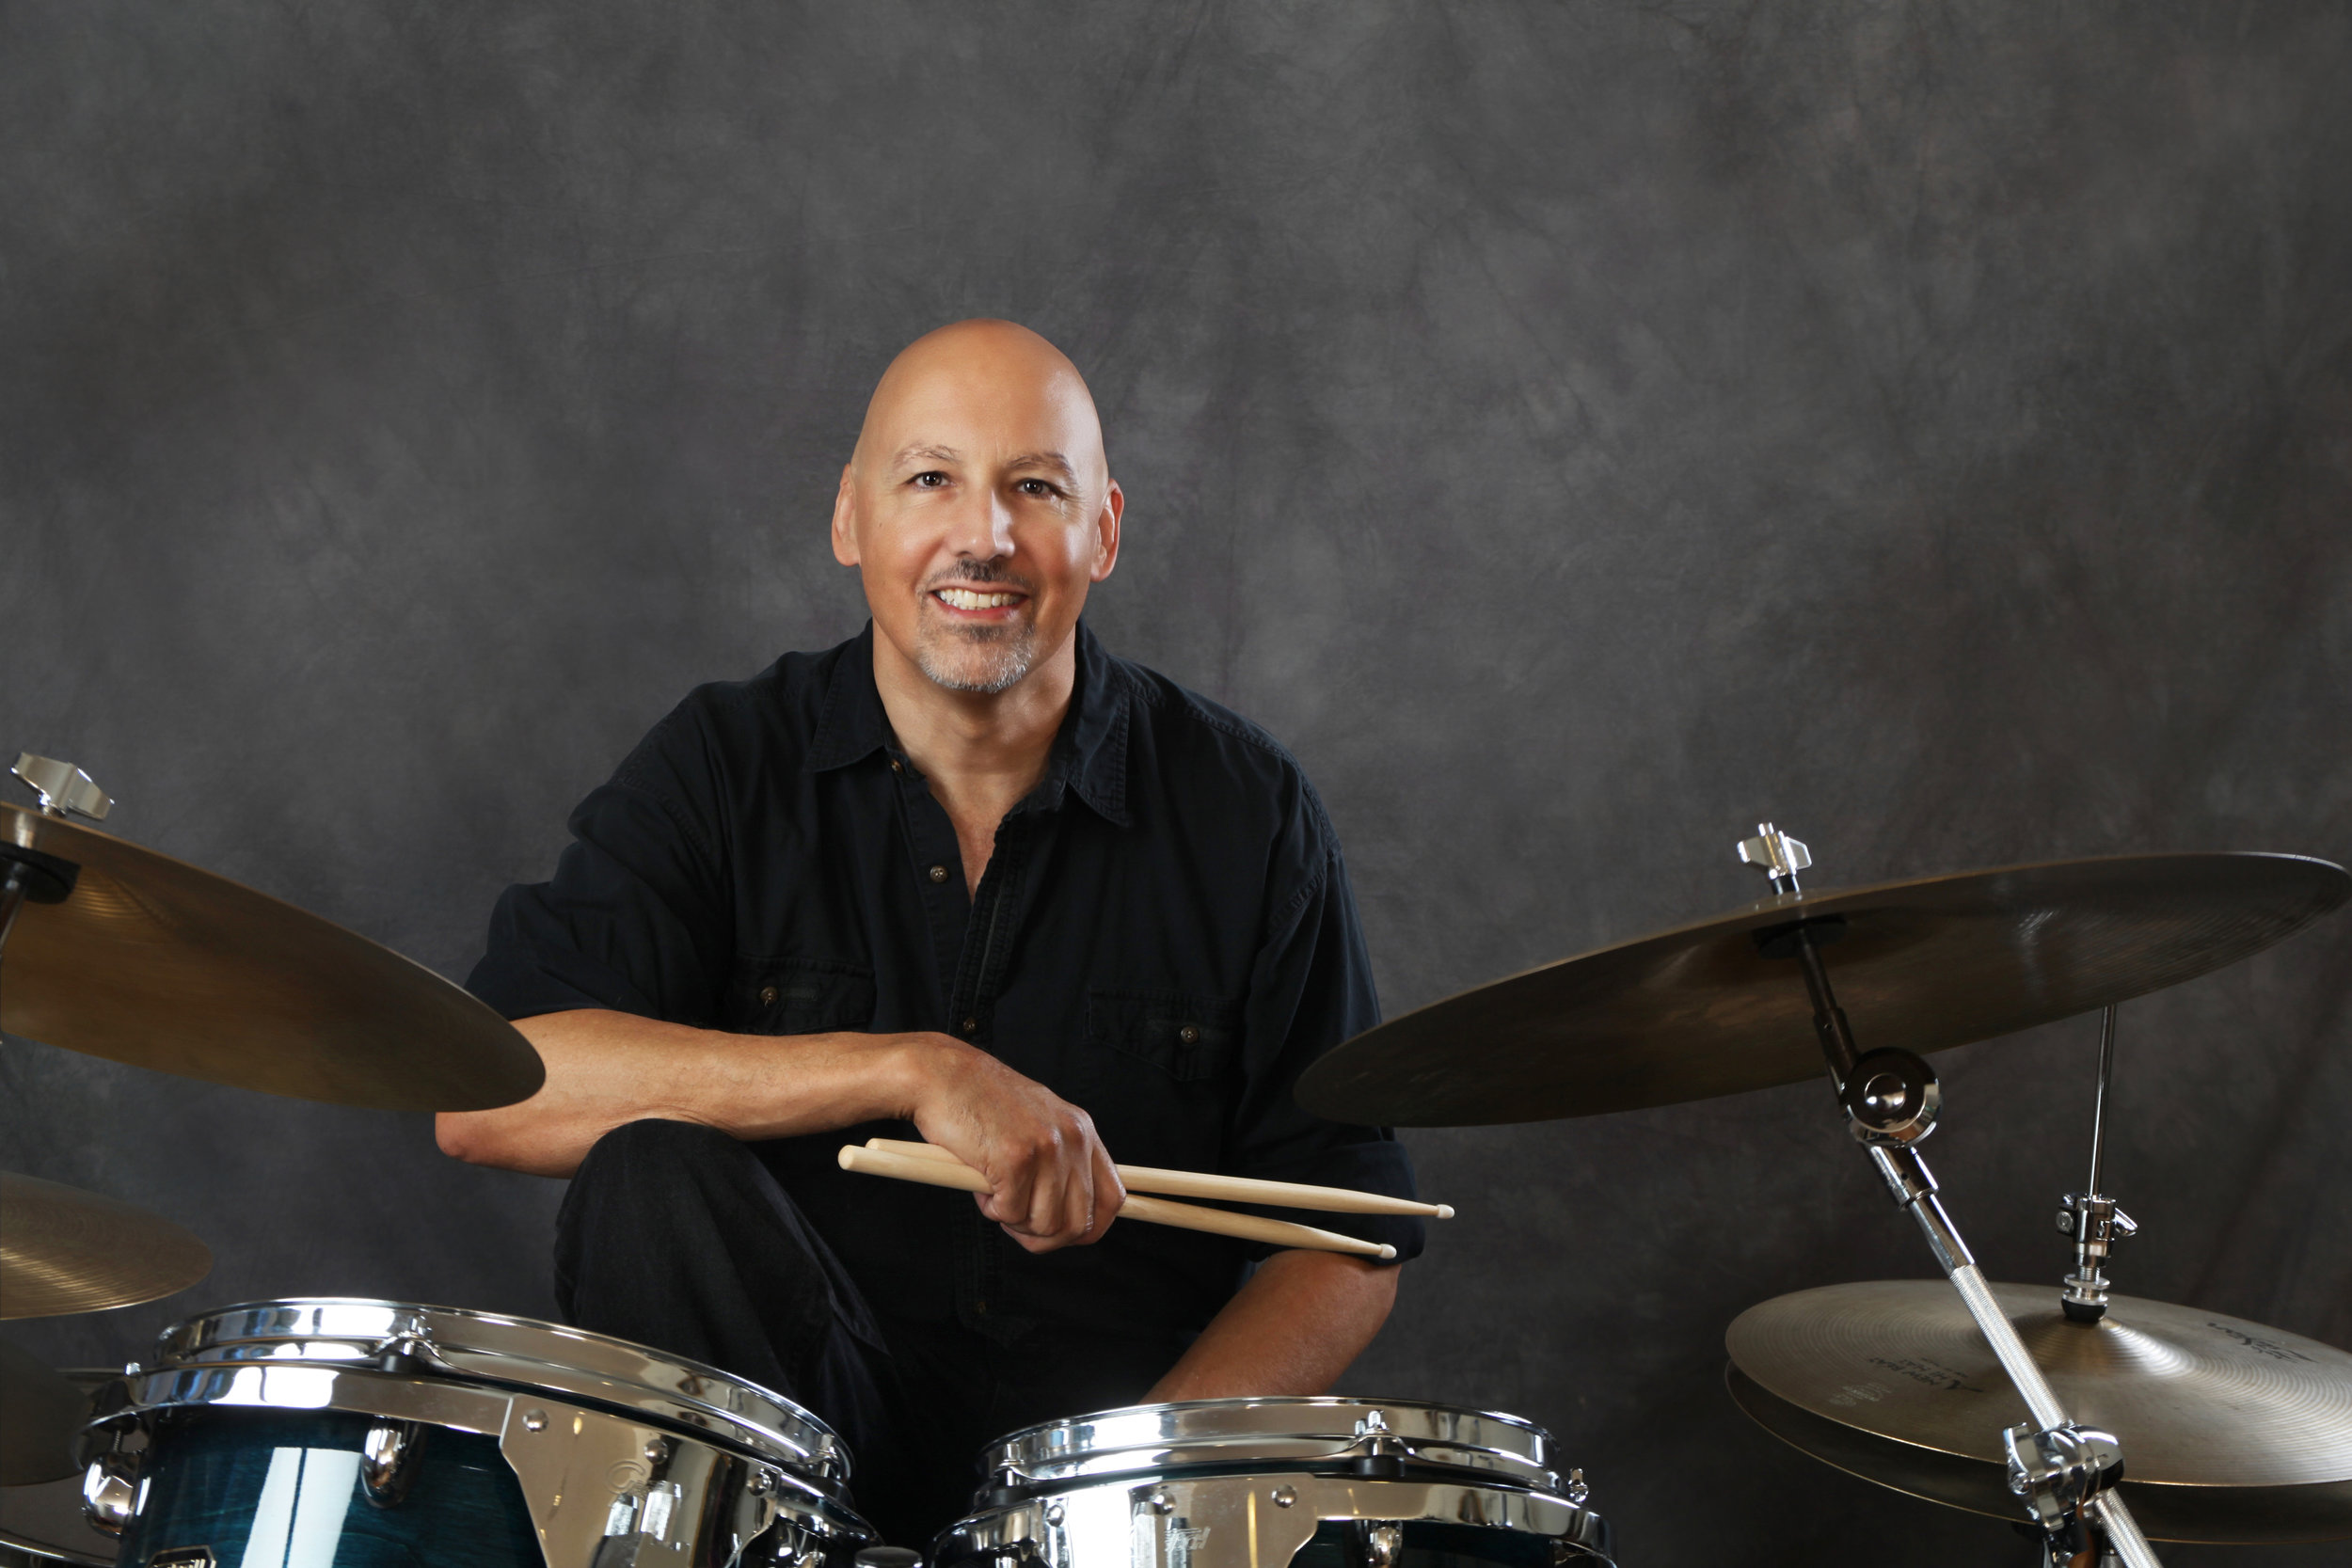 Ken - Ken's drumming career began in high school, where he earned the prestigious John Phillips Souza Award. He went on to study with legendary Jerry Steinholtz and Tom Brechtlein, named one of the top 500 drummers in the world. Ken has performed with multiple Grammy award-winning artists and regularly plays with the band Guilty Conscience.